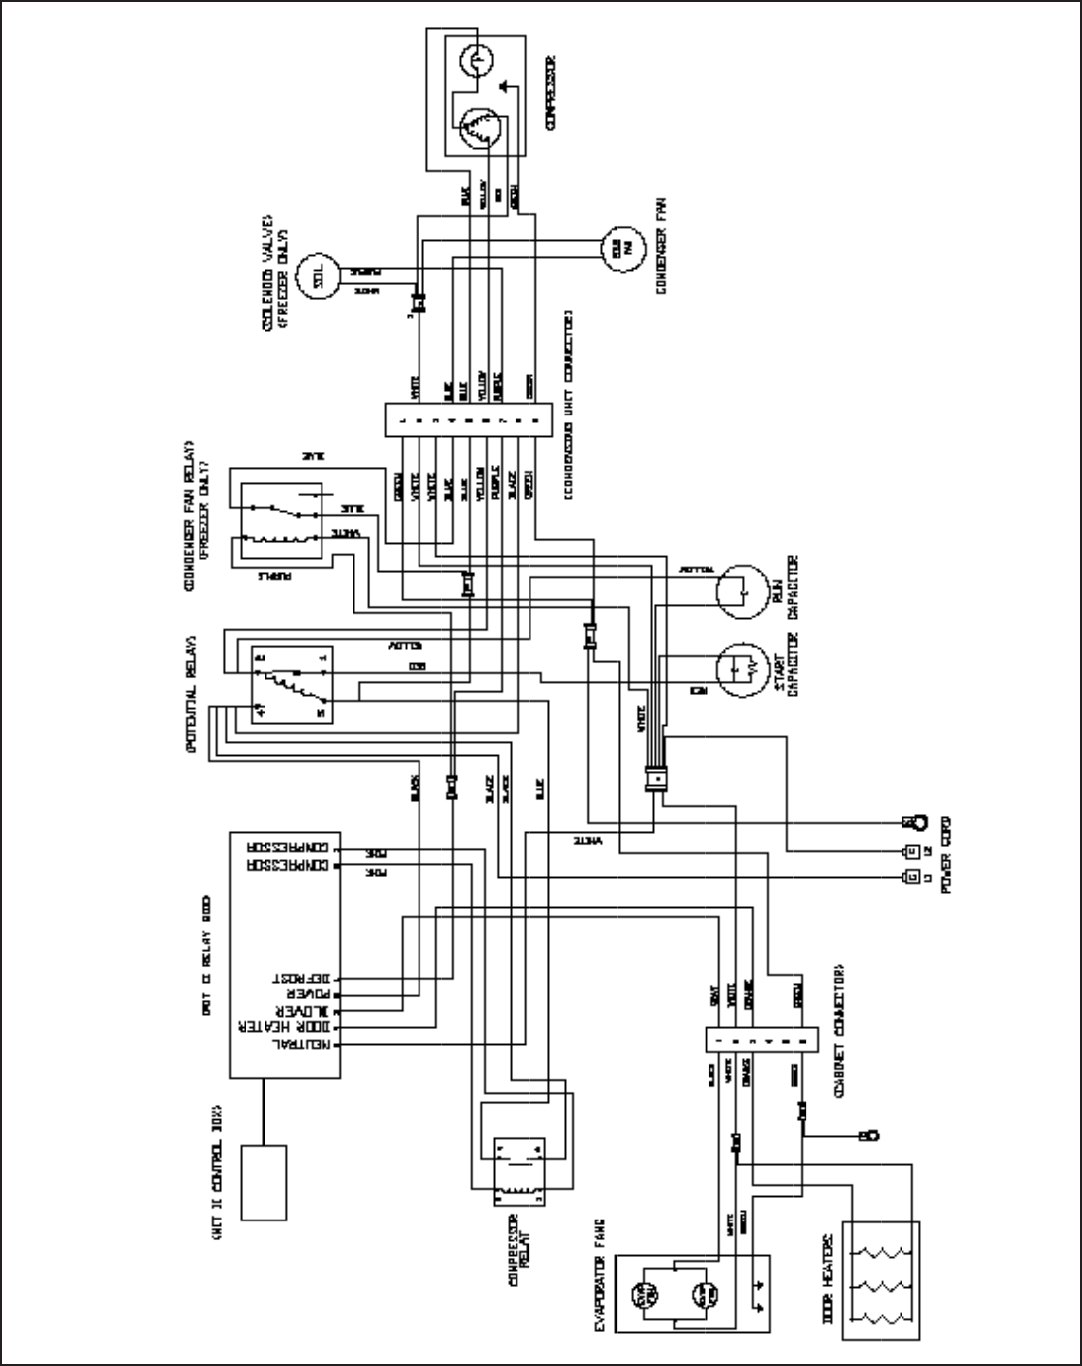 Wiring Diagrams For Traulsen Freezers on wiring diagram for walk in freezer